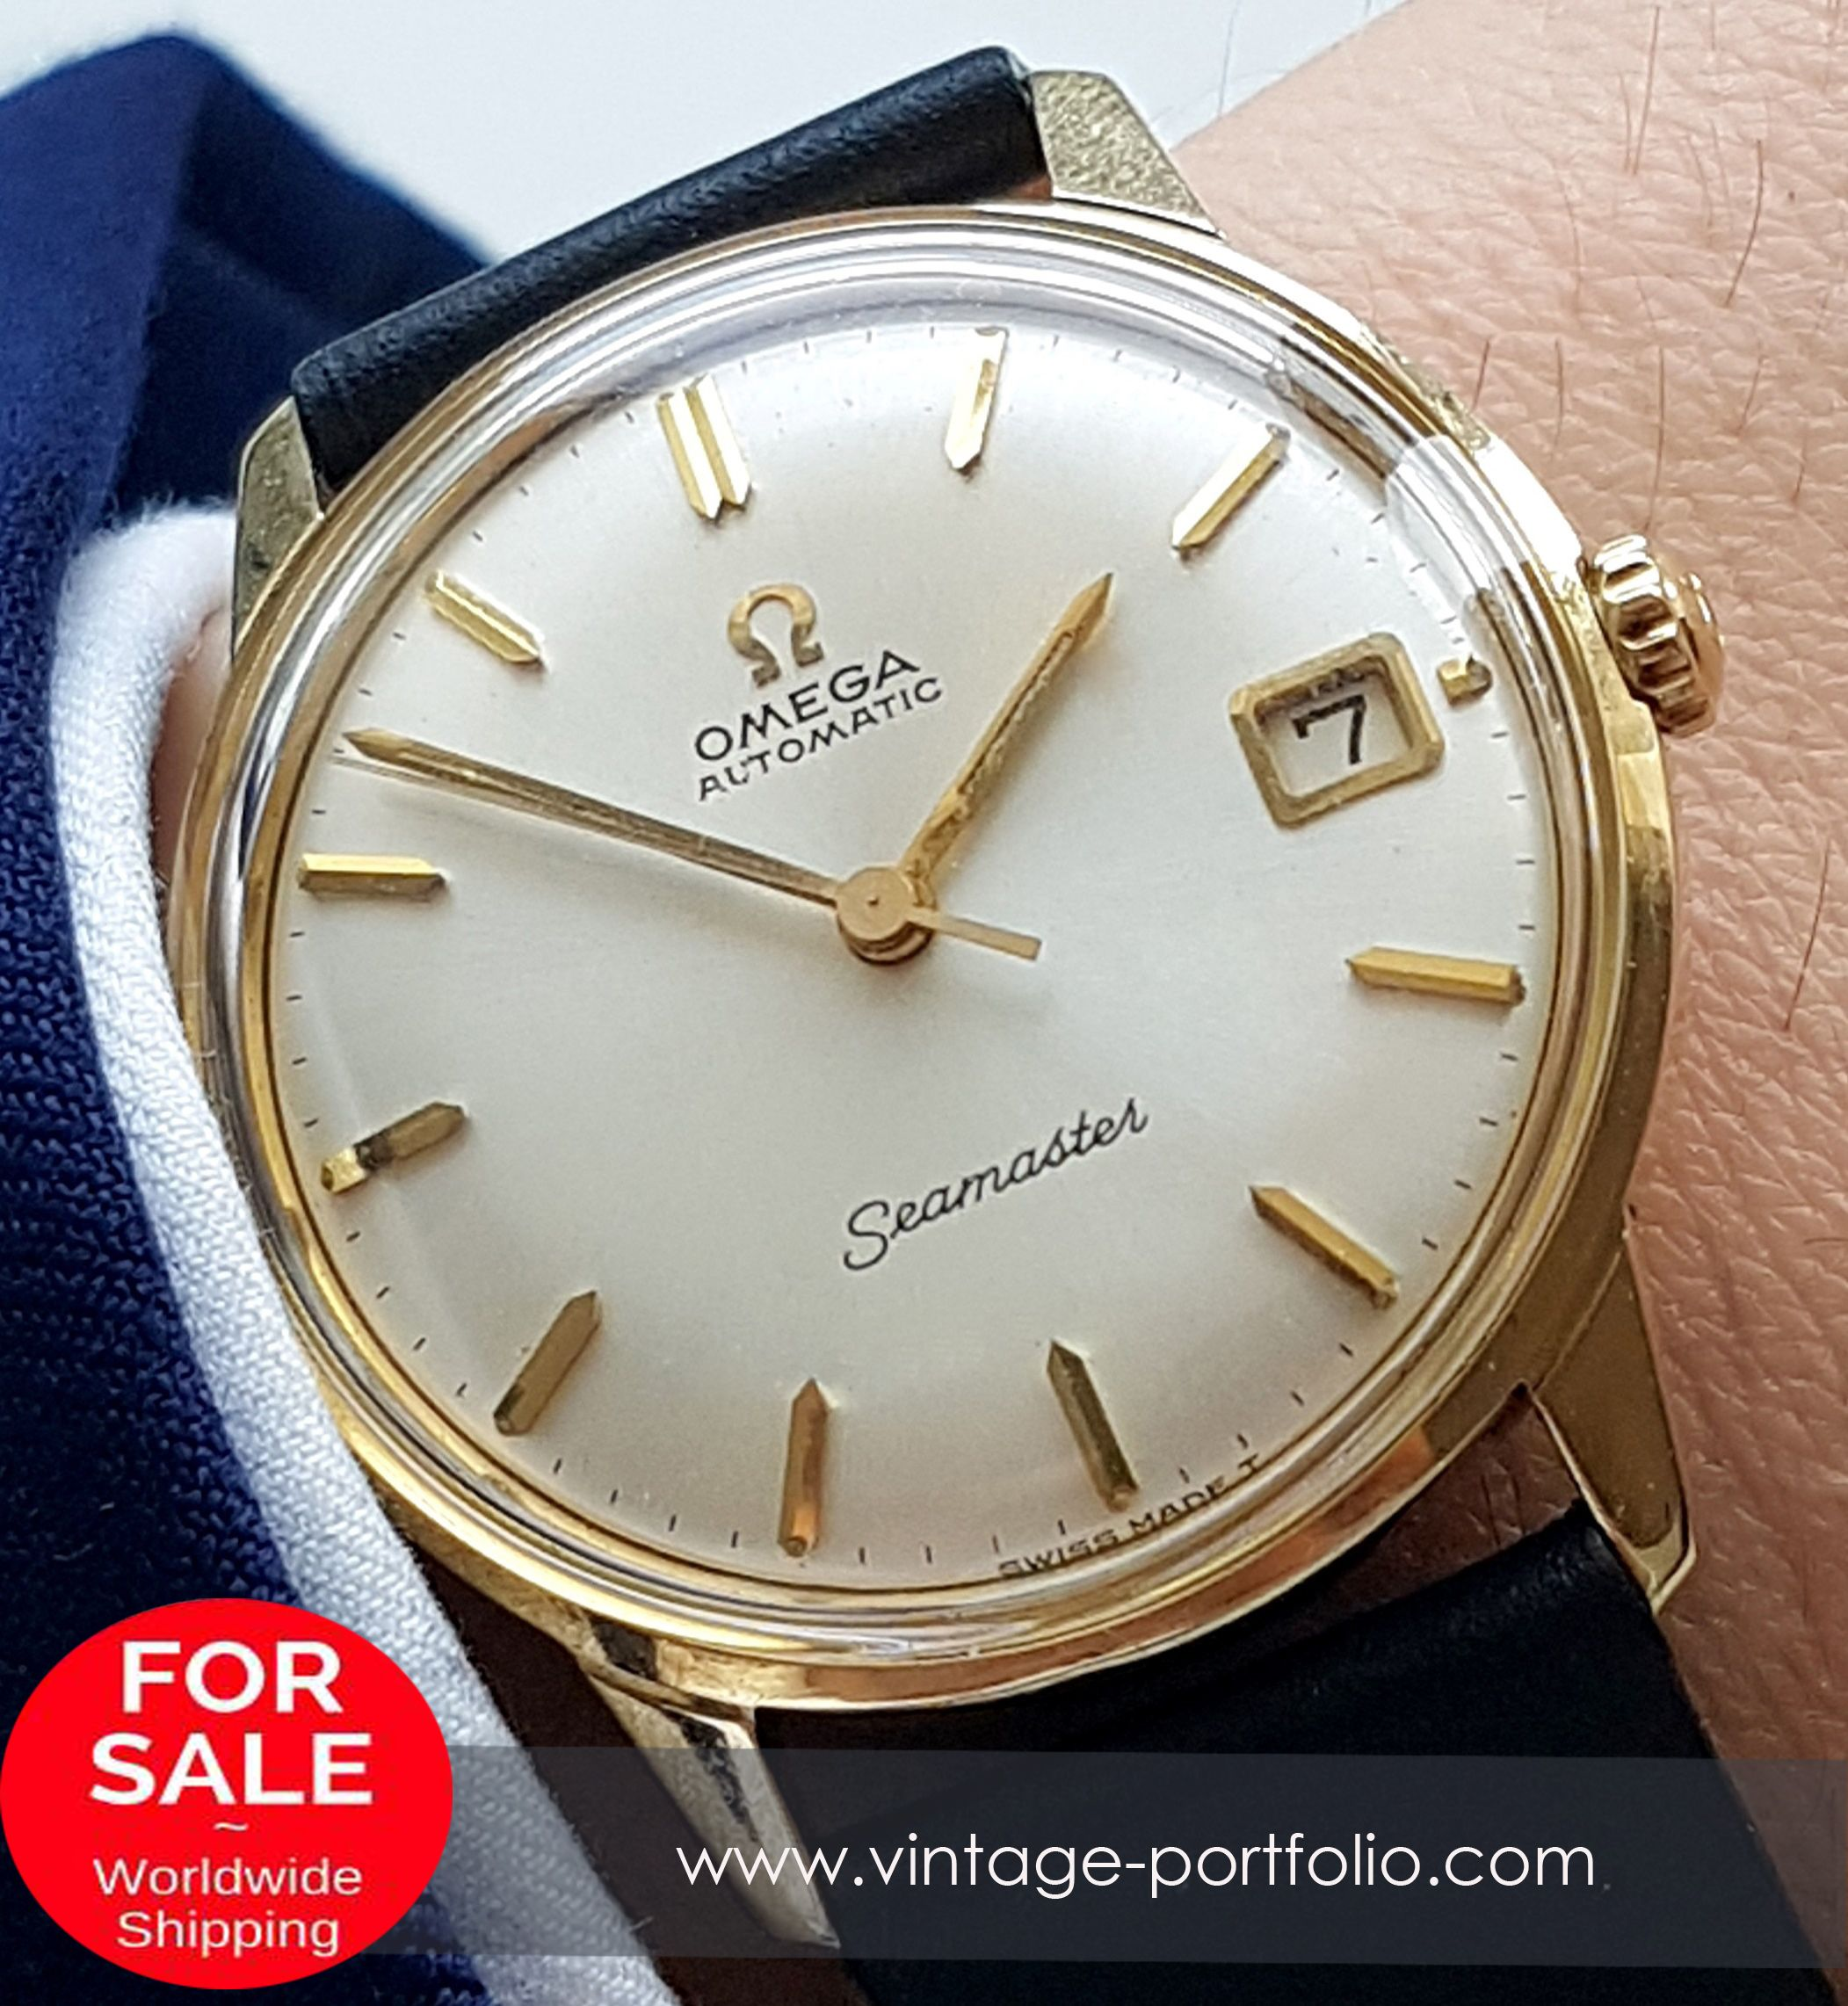 1966 Annaversary watch! Perfect Omega Seamaster Automatic Solid Gold Date 14ct #omegaseamaster #seamaster #omegavintage #vintageos